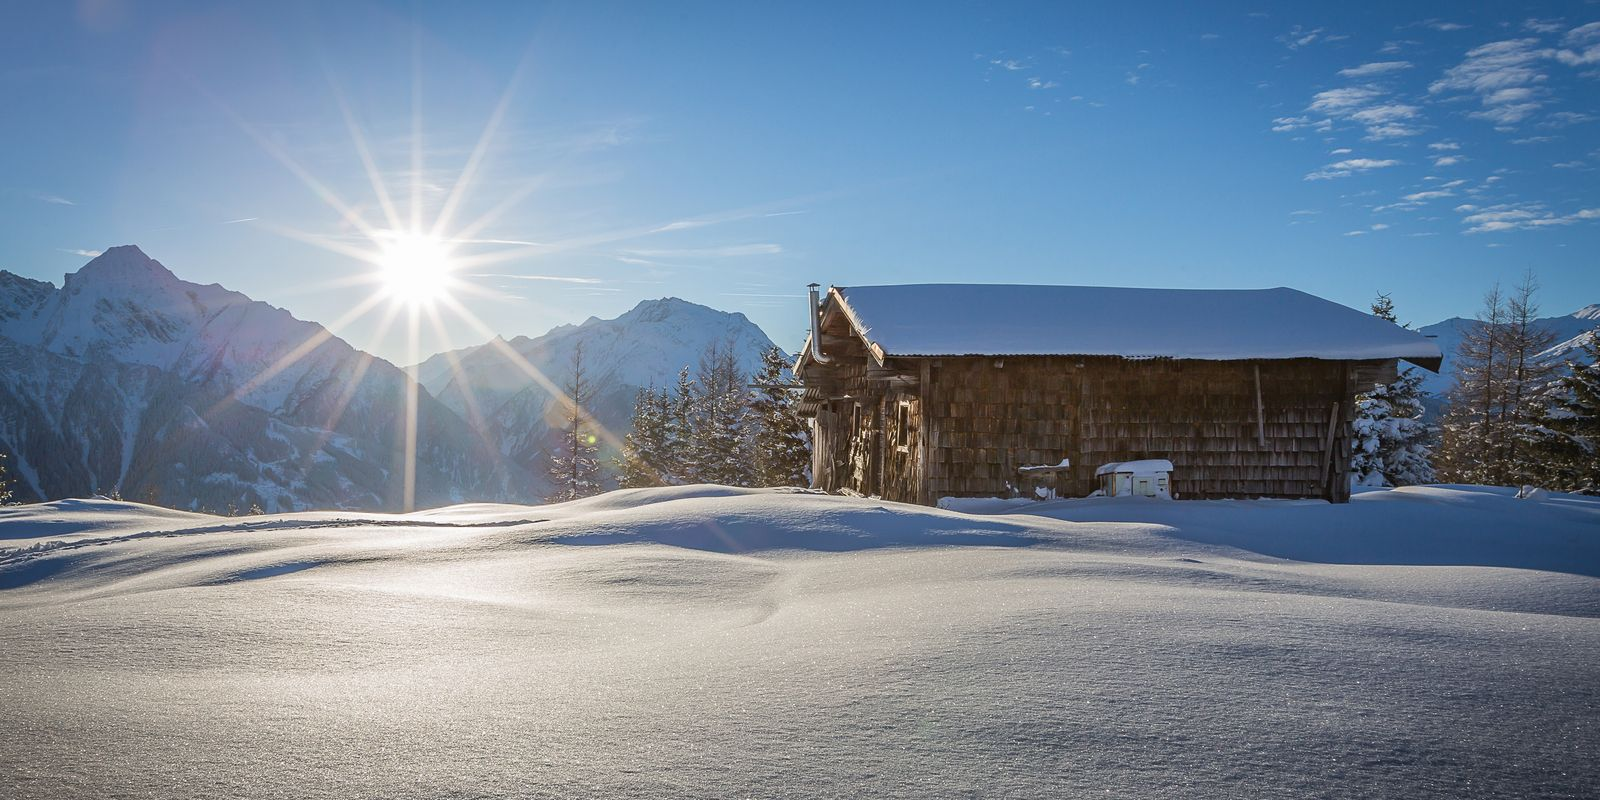 Snow-covered Zillertal